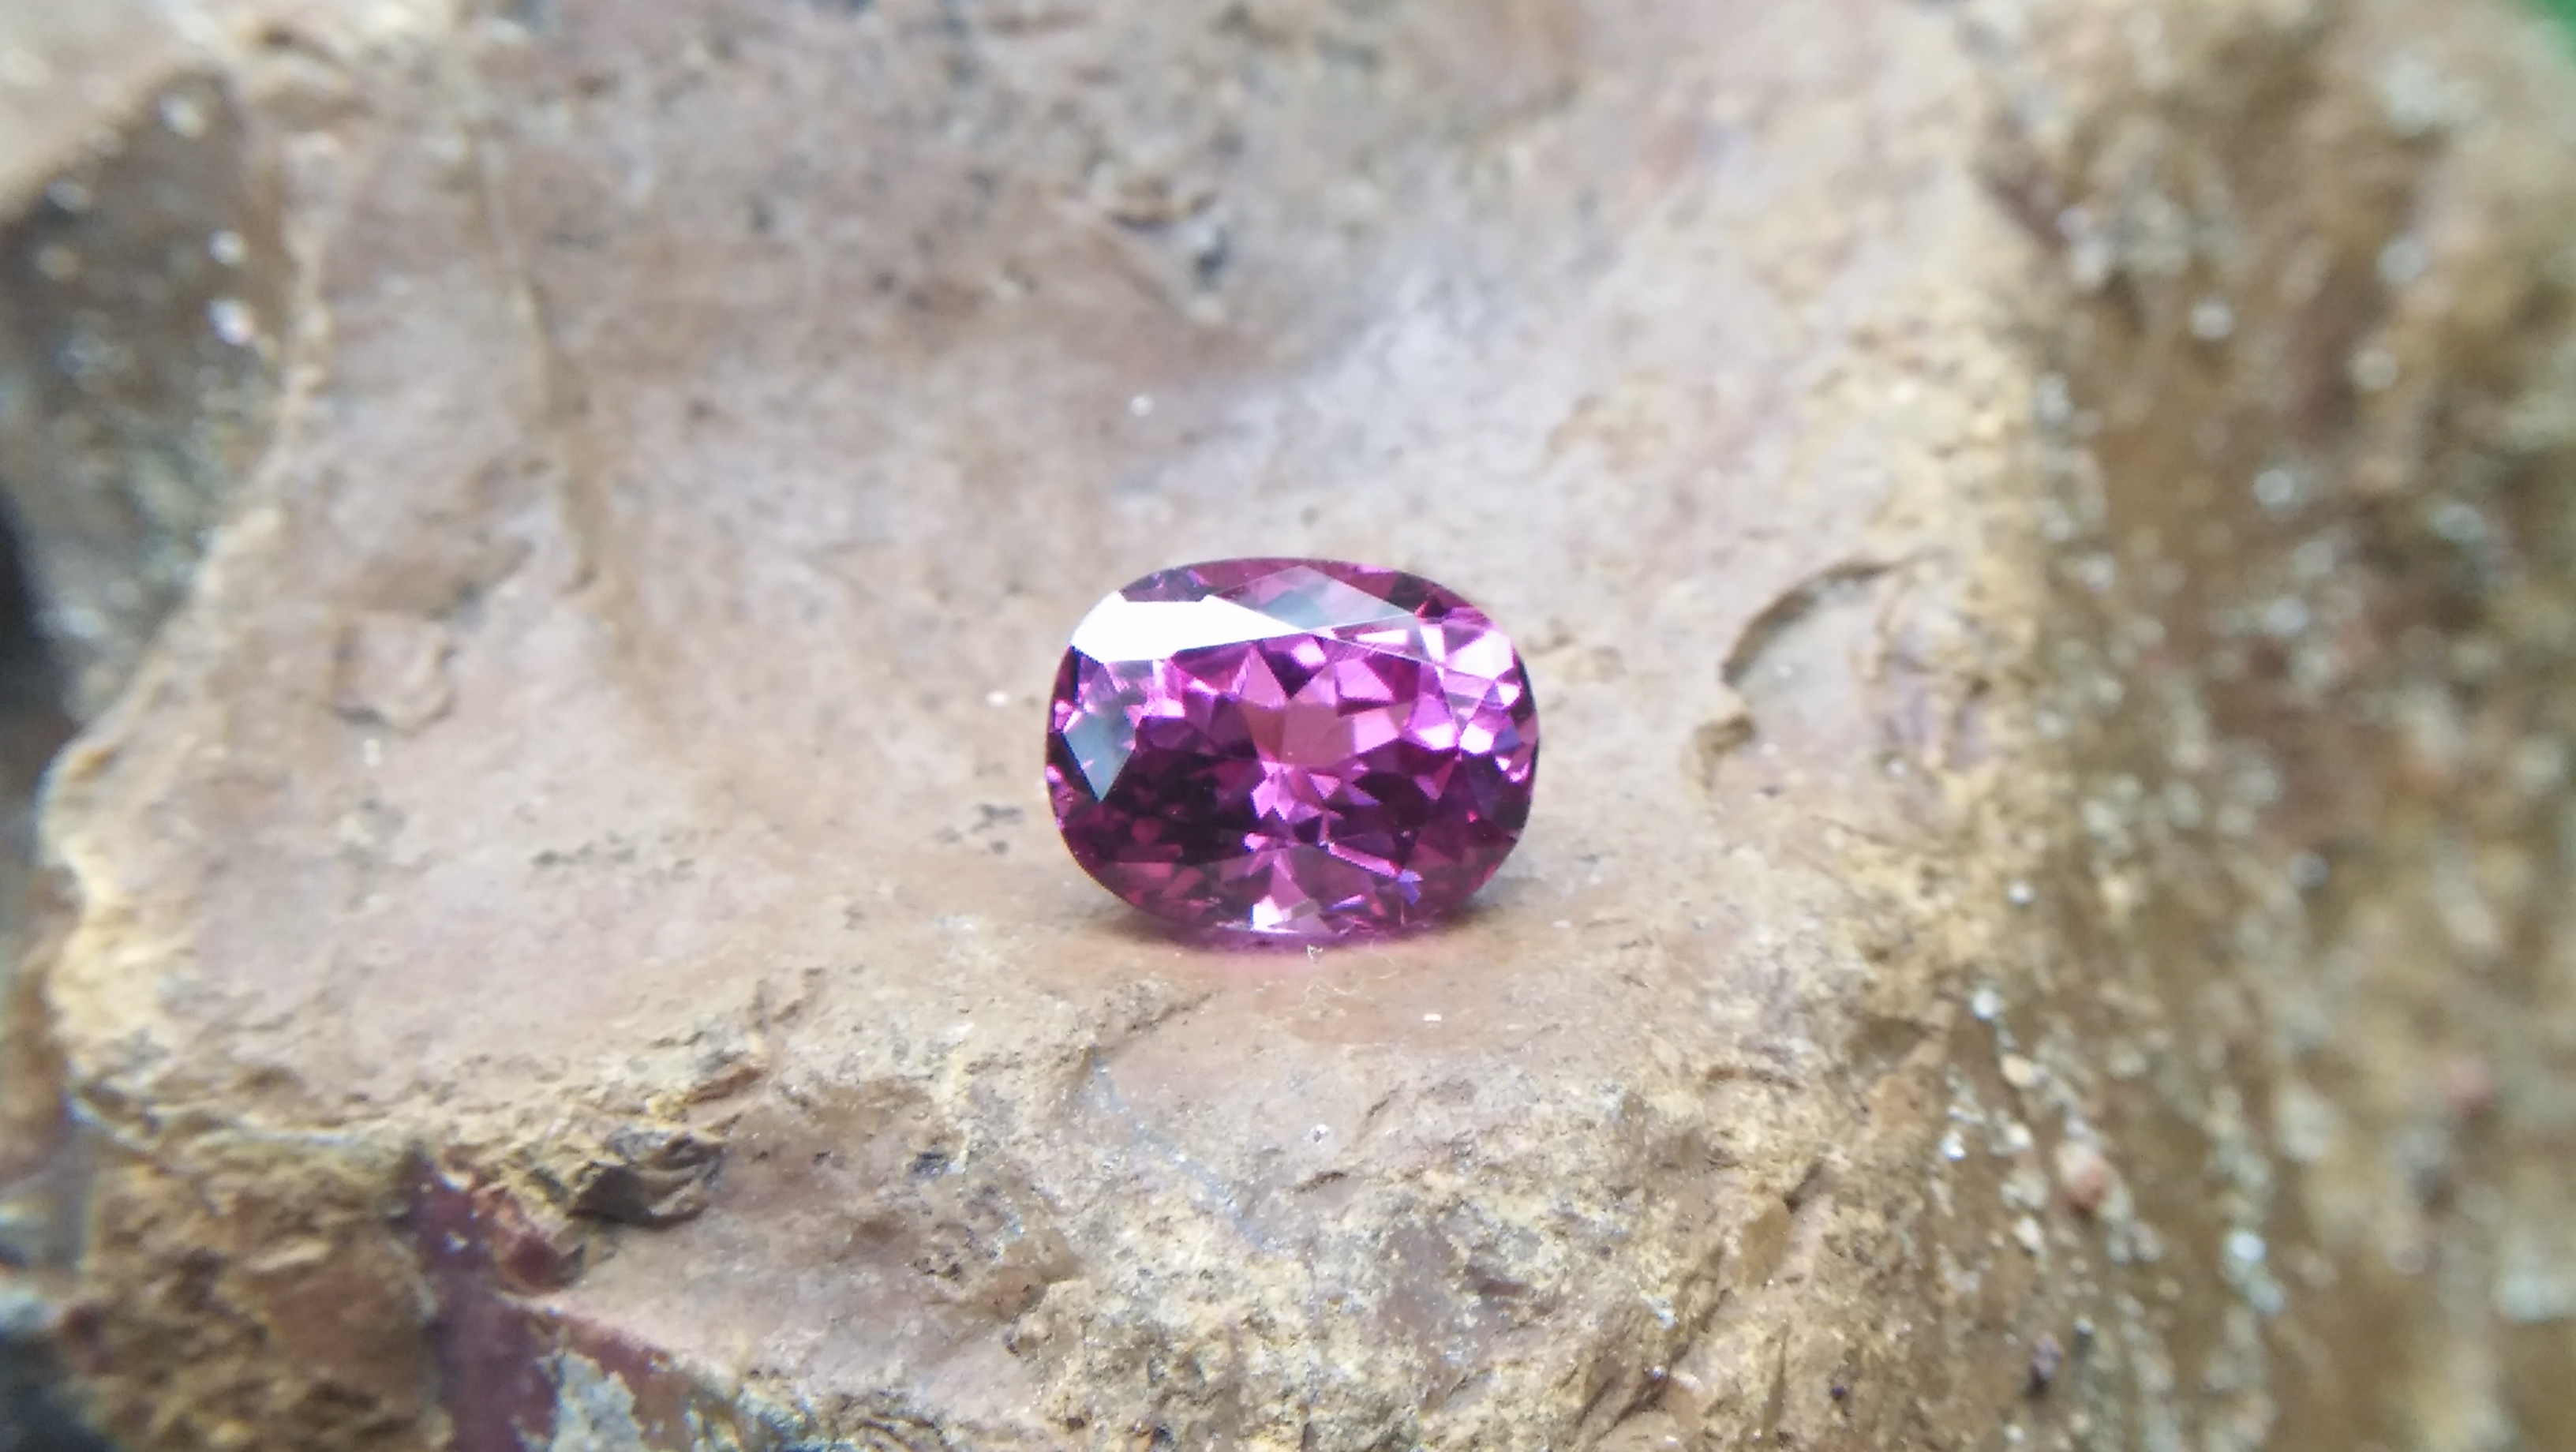 Natural Pink Garnet Weight: 2.15Cts Dimension: 8.4mm x 6.4mm x 4.9mm Colour: Reddish Pink Clarity : SI Birthstone : January Treatment : Unheated/Natural